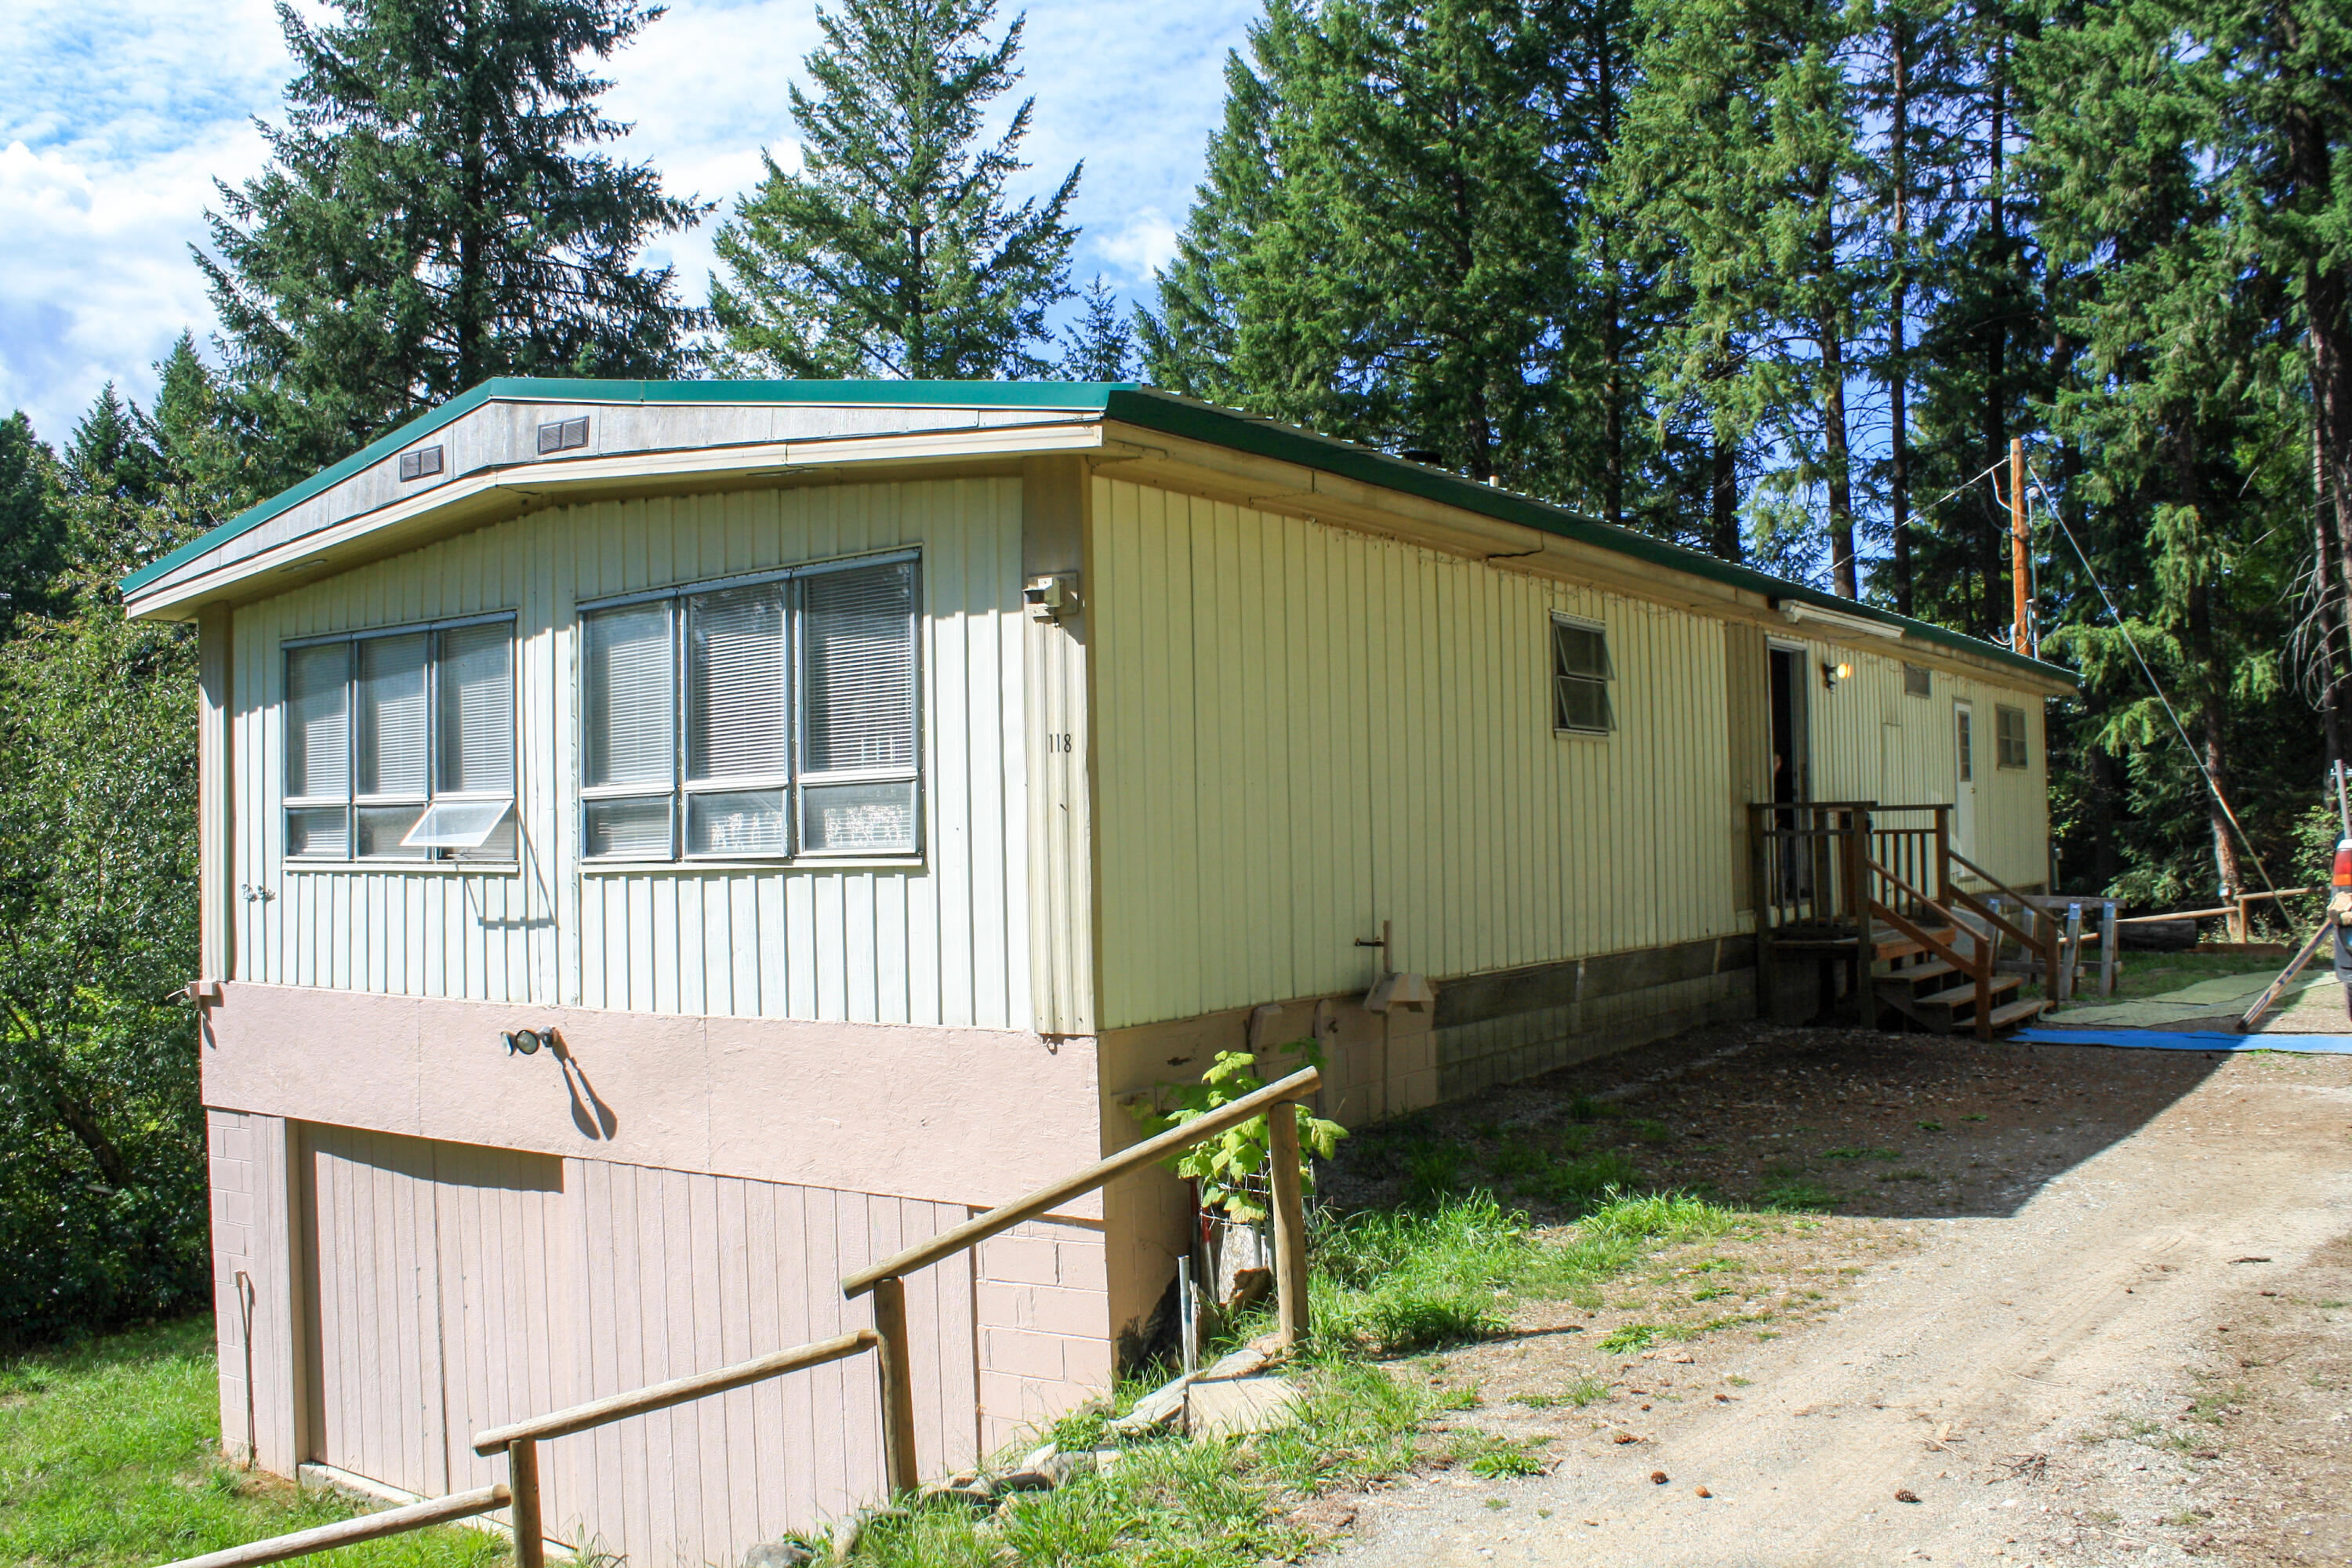 LOOK AT ME! This home has new carpeting and vinyl flooring throughout, new paint, new mini blinds in the living room/dining room, new stove, new vent hood, new toilet. Featuring 3 bedrooms/2 bathrooms, a separate dining room, with built-in cabinetry, adjacent to the living room and kitchen as well. This doublewide is de-titled and has a full basement on a permanent foundation. The home sits in the middle of trees and has a nice deck with views of the mountains through the trees. It's bordered by over 70 acres of the Stimson Lumber Company to the north.  Call/text Carolyn Daughton at 406-291-3782, or your real estate professional.